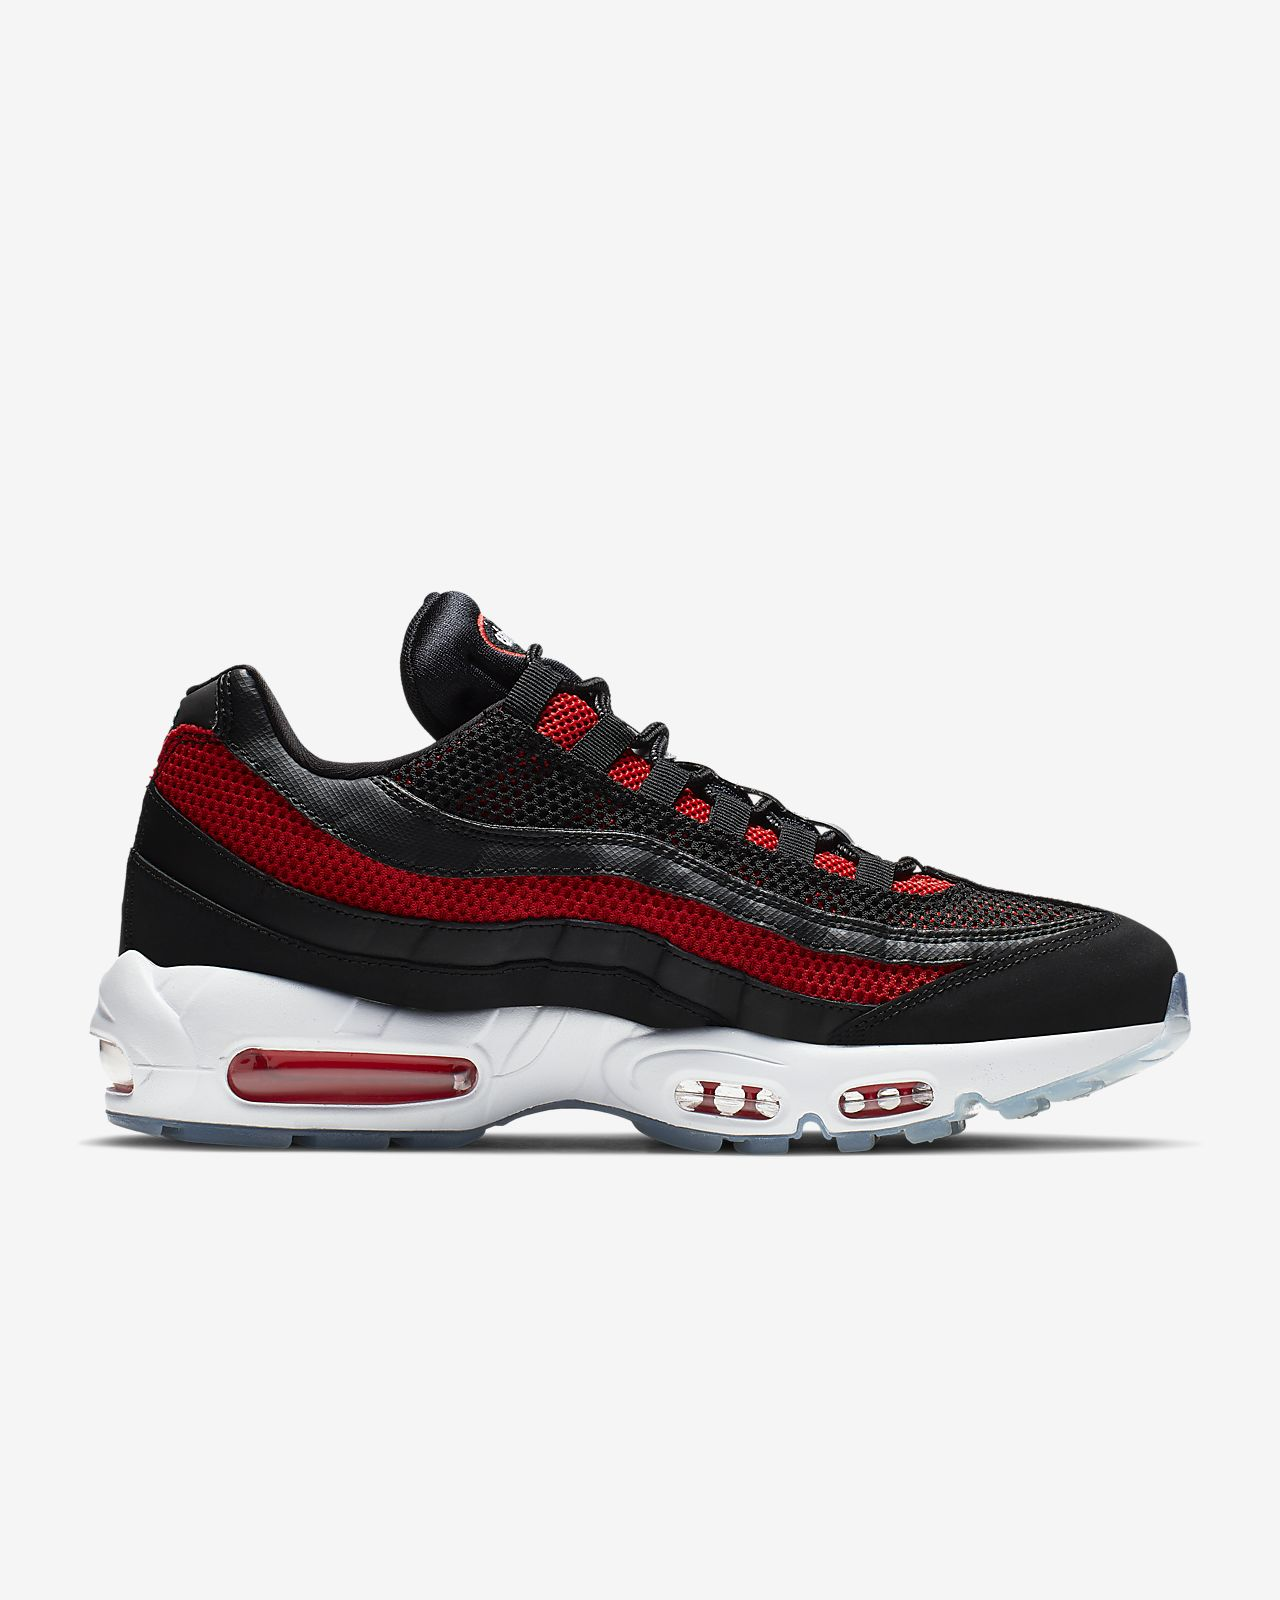 online retailer c08fc b34fd ... Nike Air Max 95 Essential Men s Shoe